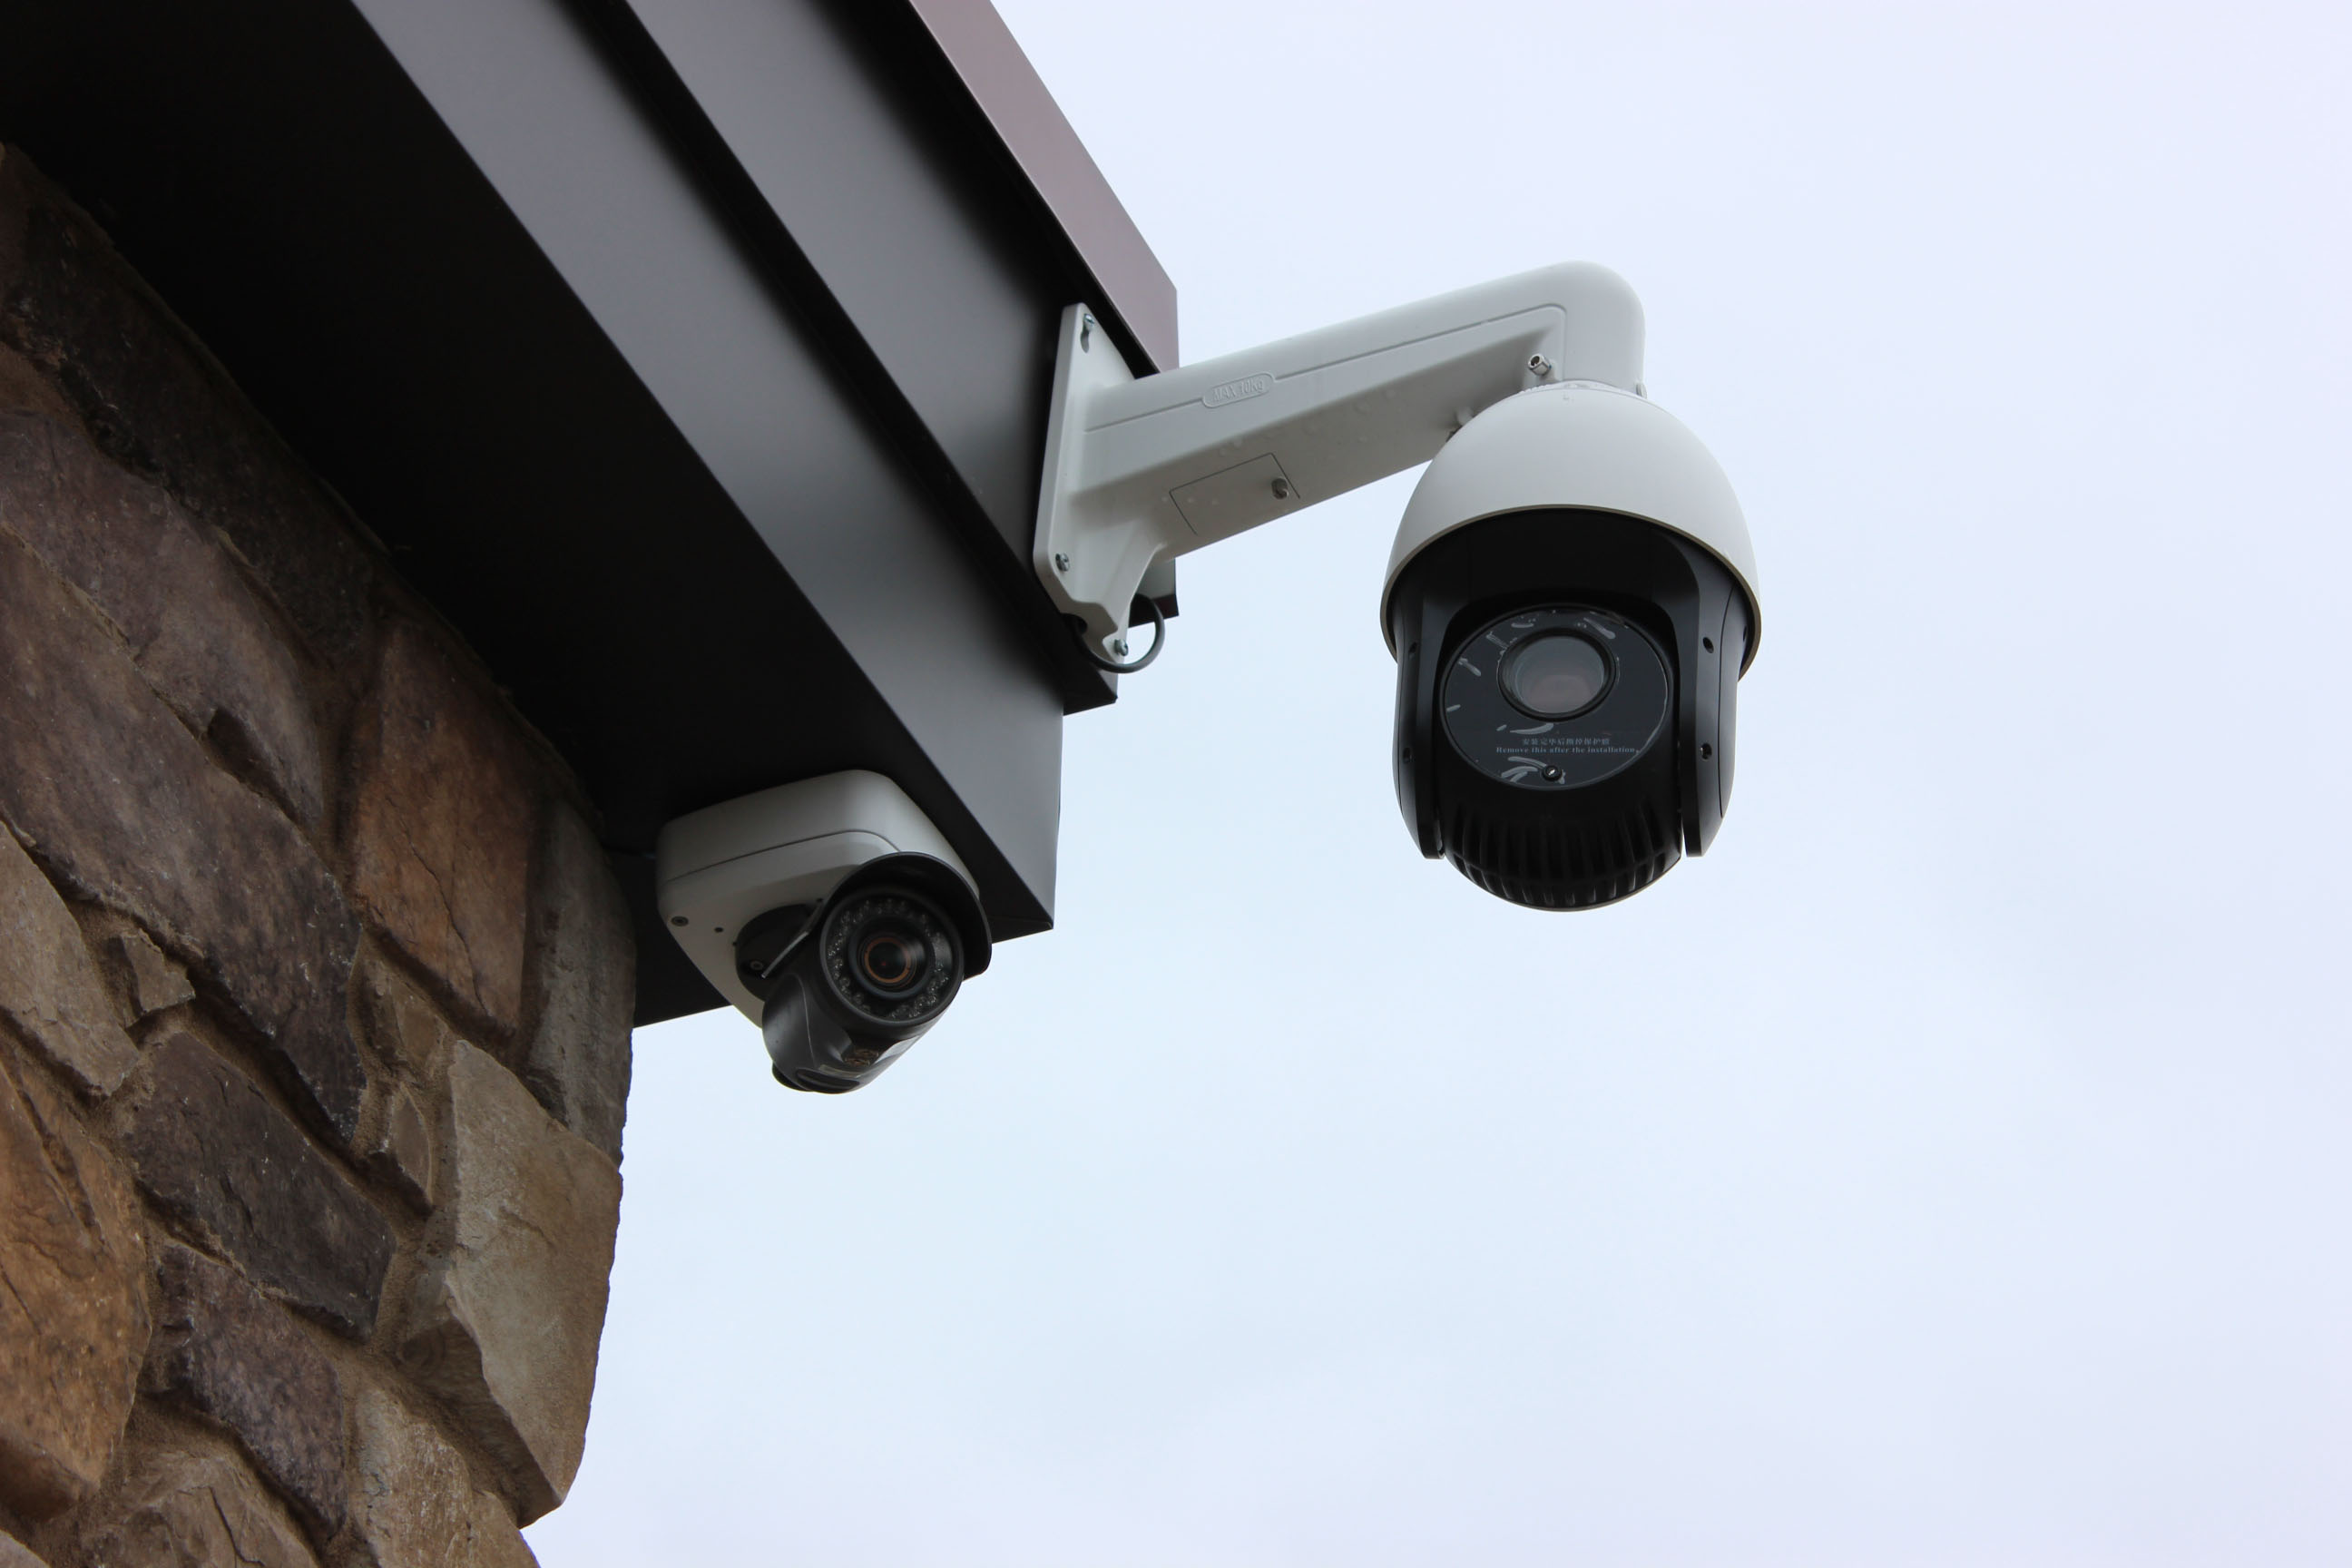 Experts laud modern security systems, say market has spiked in recent years